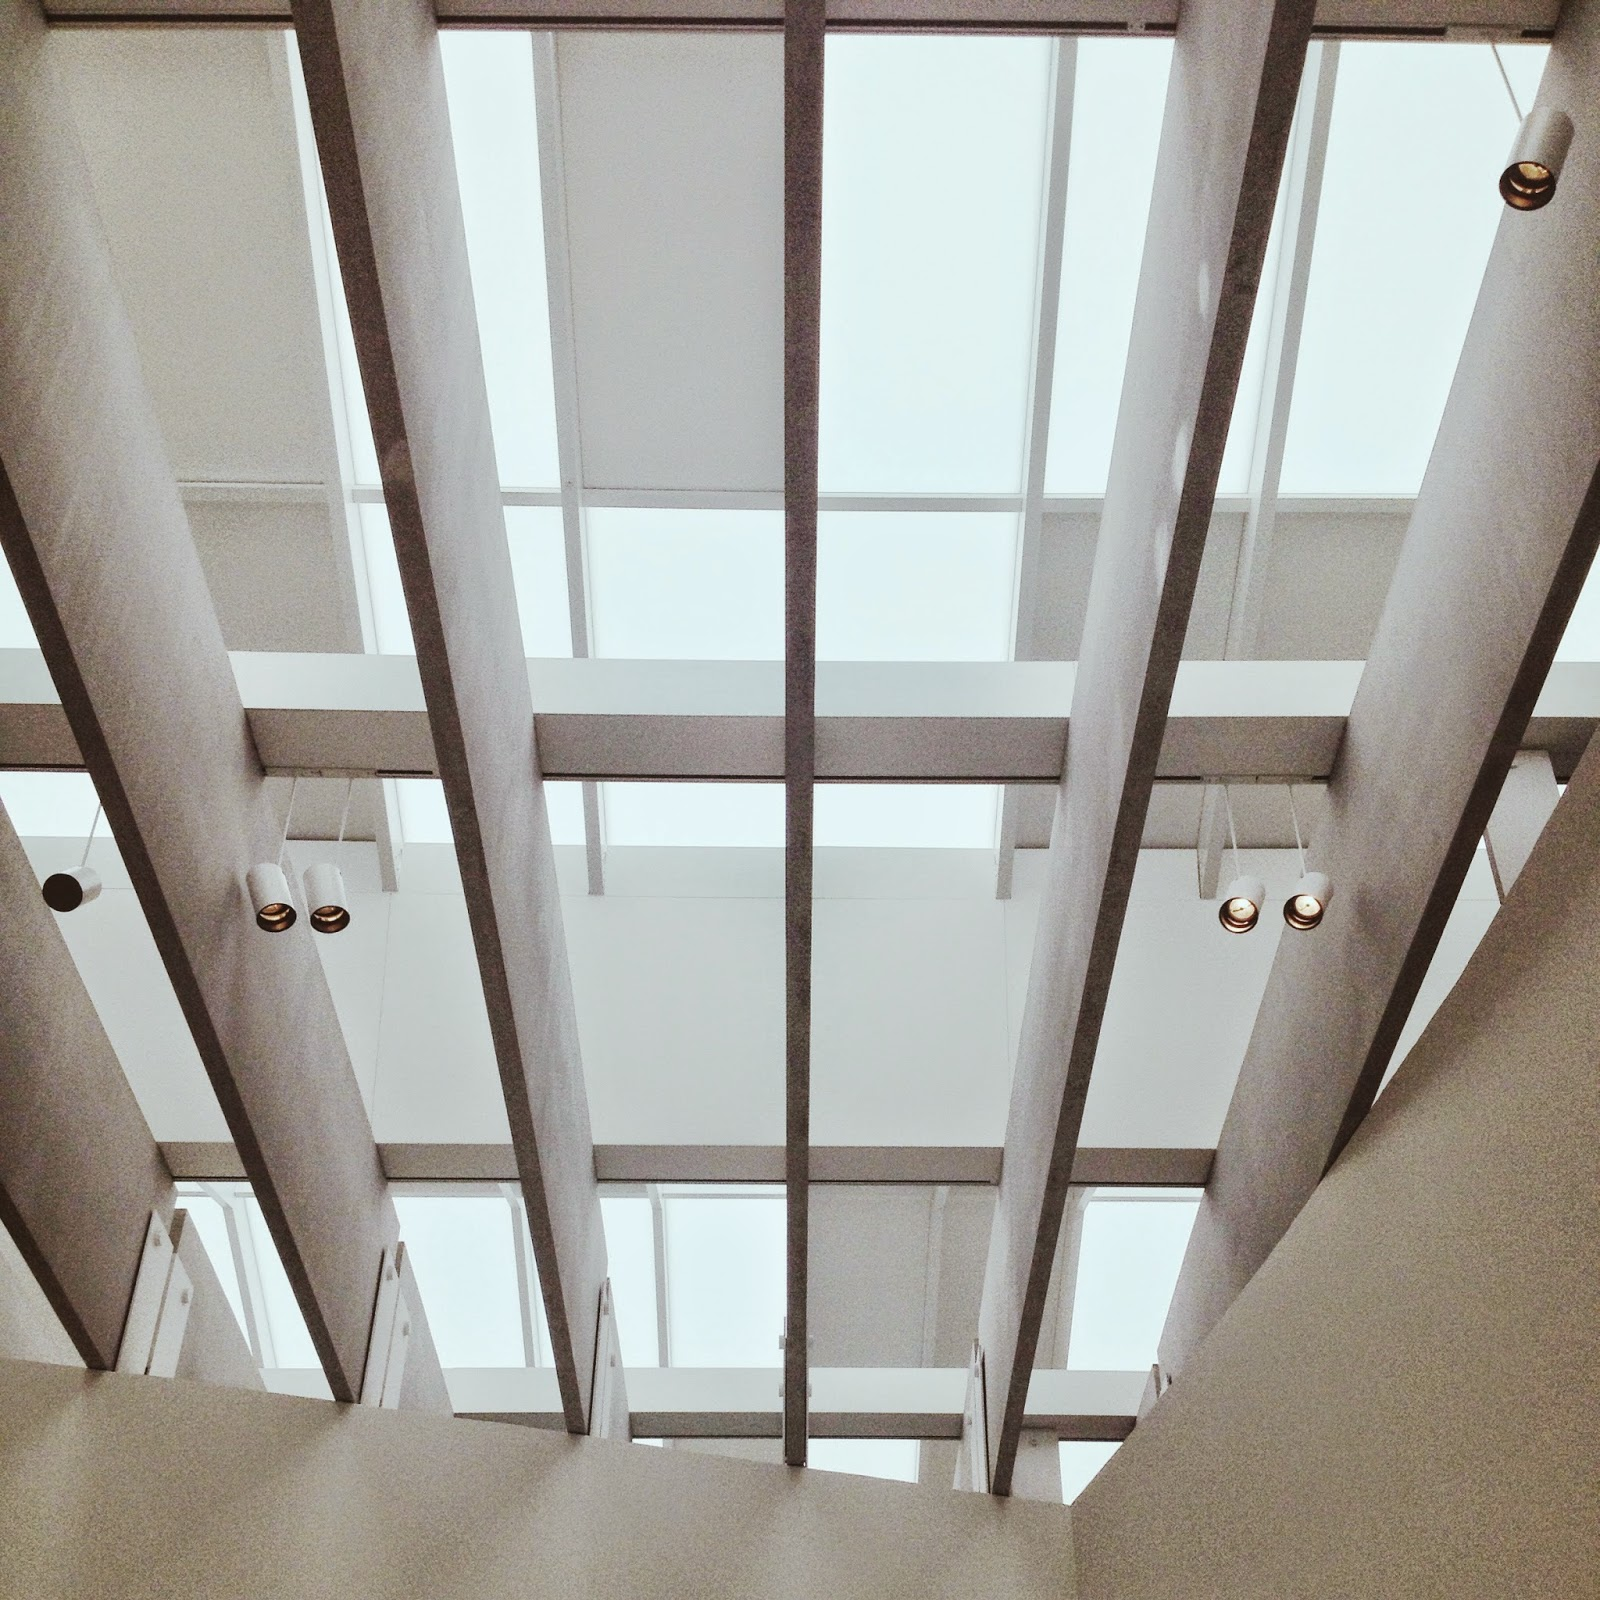 Corning Museum of Glass Ceiling